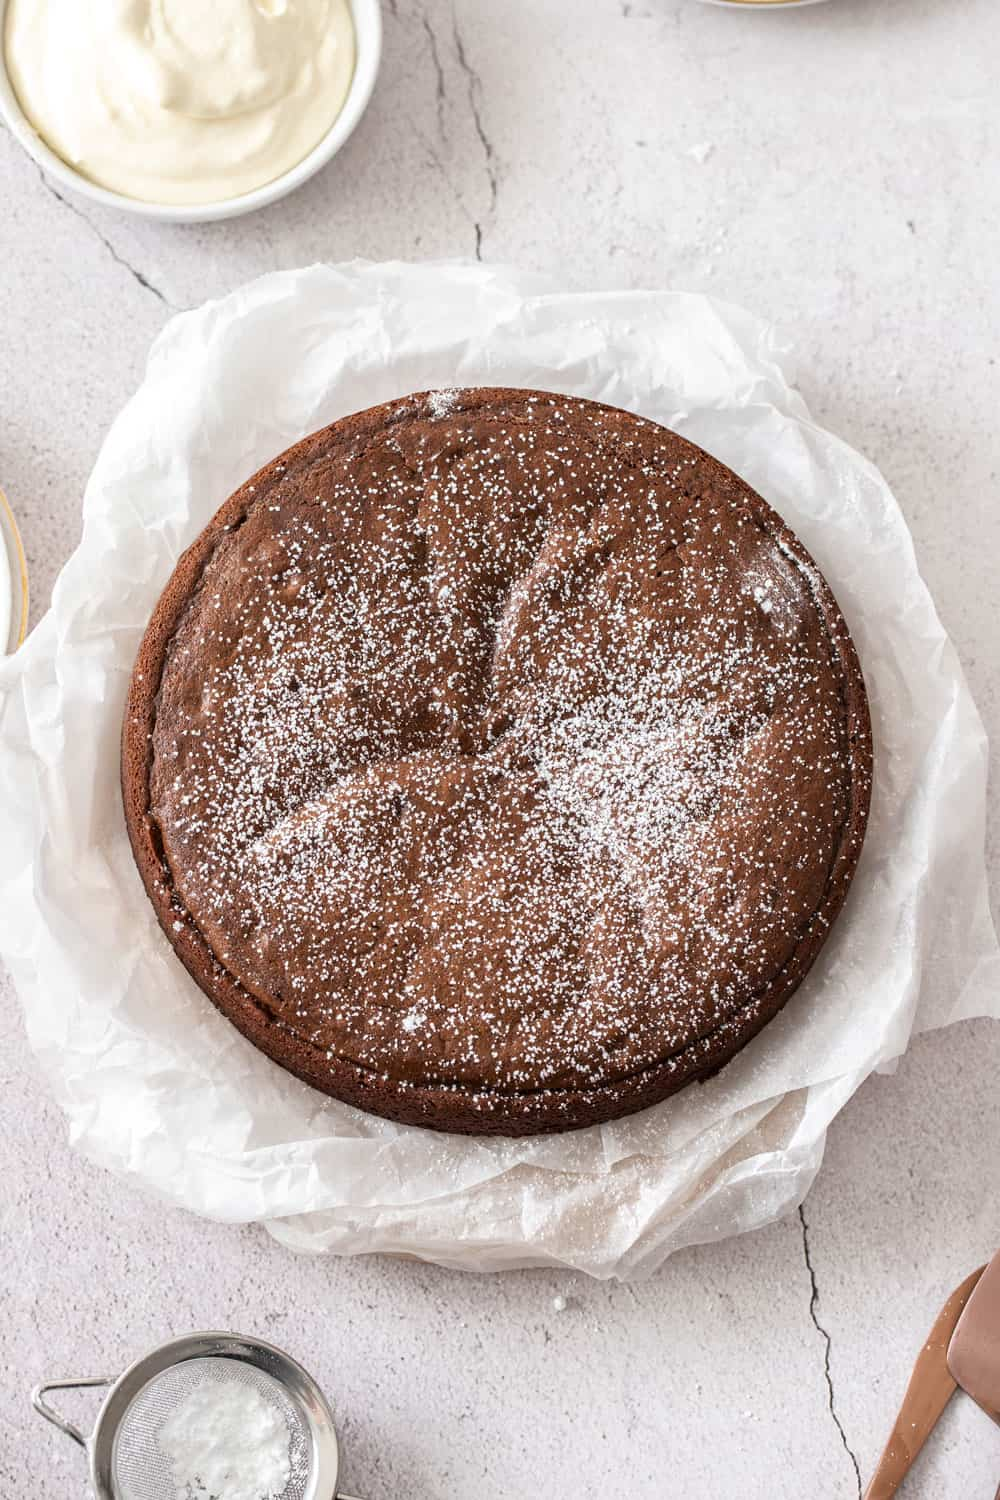 the whole cake, dusted with icing sugar, on some baking paper.